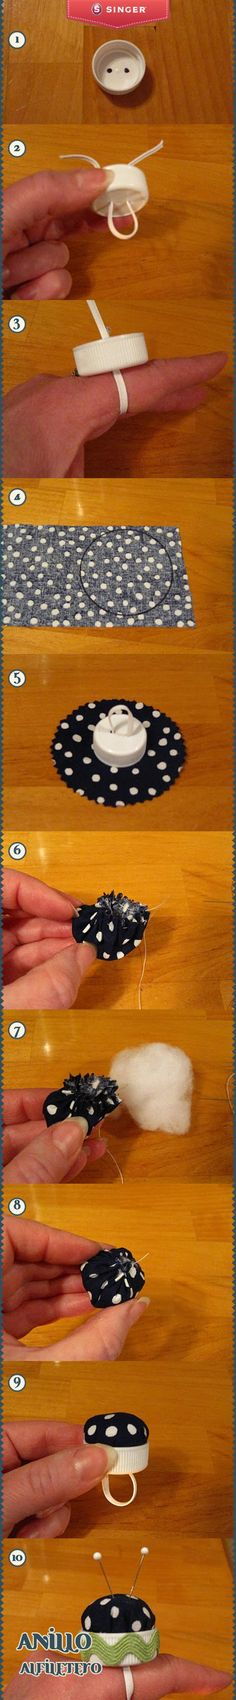 DIY Ring Pincushion